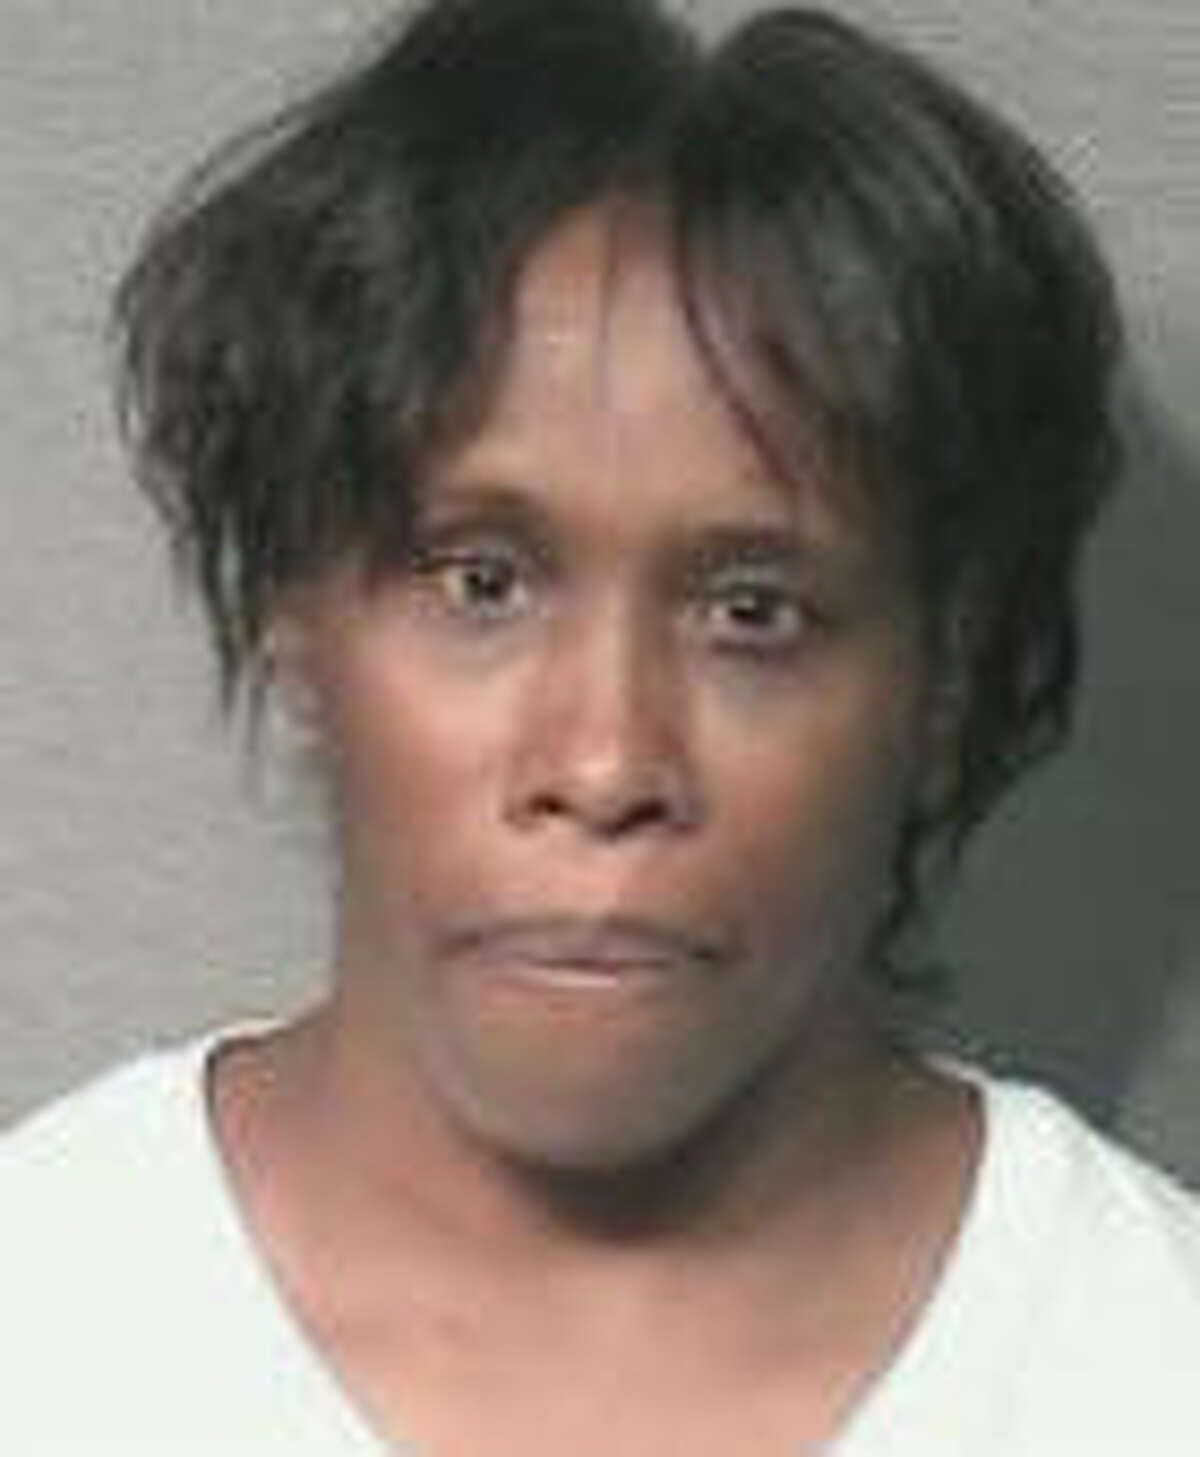 Pebbles Hines is accused of running over her neighbor as he mowed the lawn.